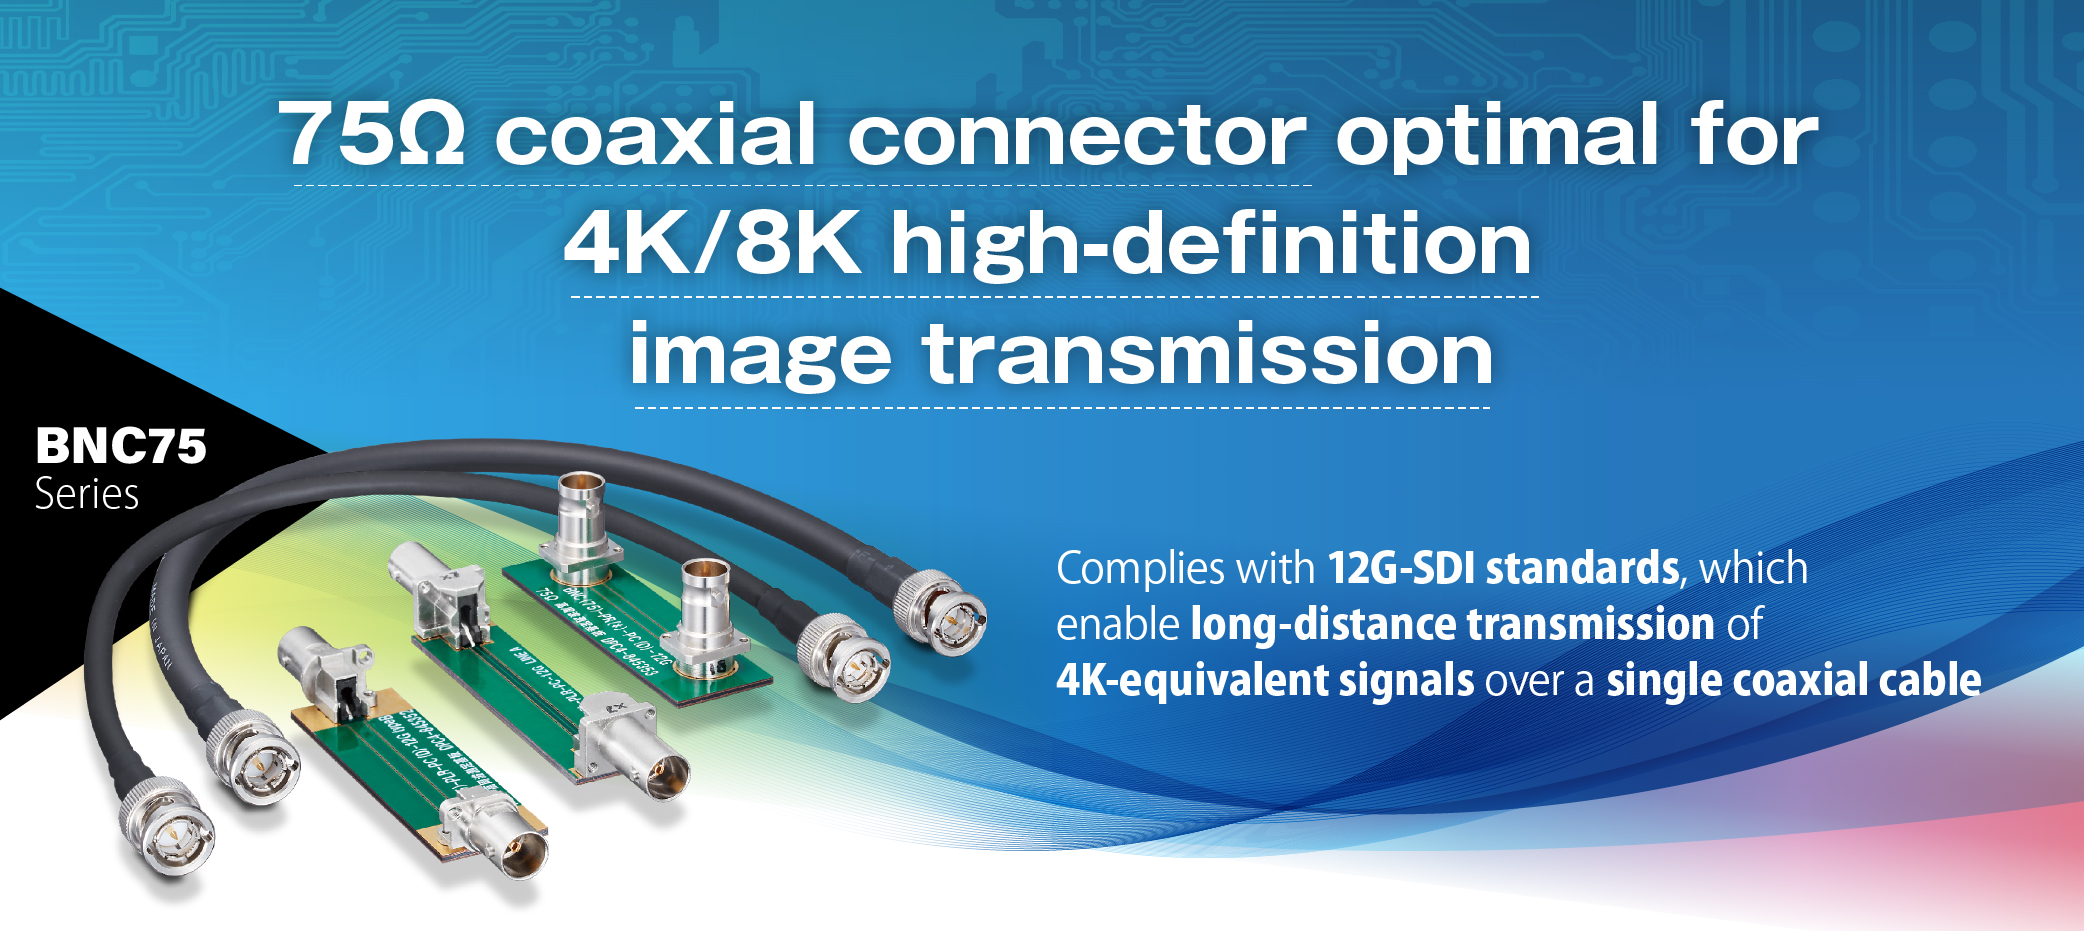 75Ω coaxial connector optimal for 4K/8K high-definition image transmission